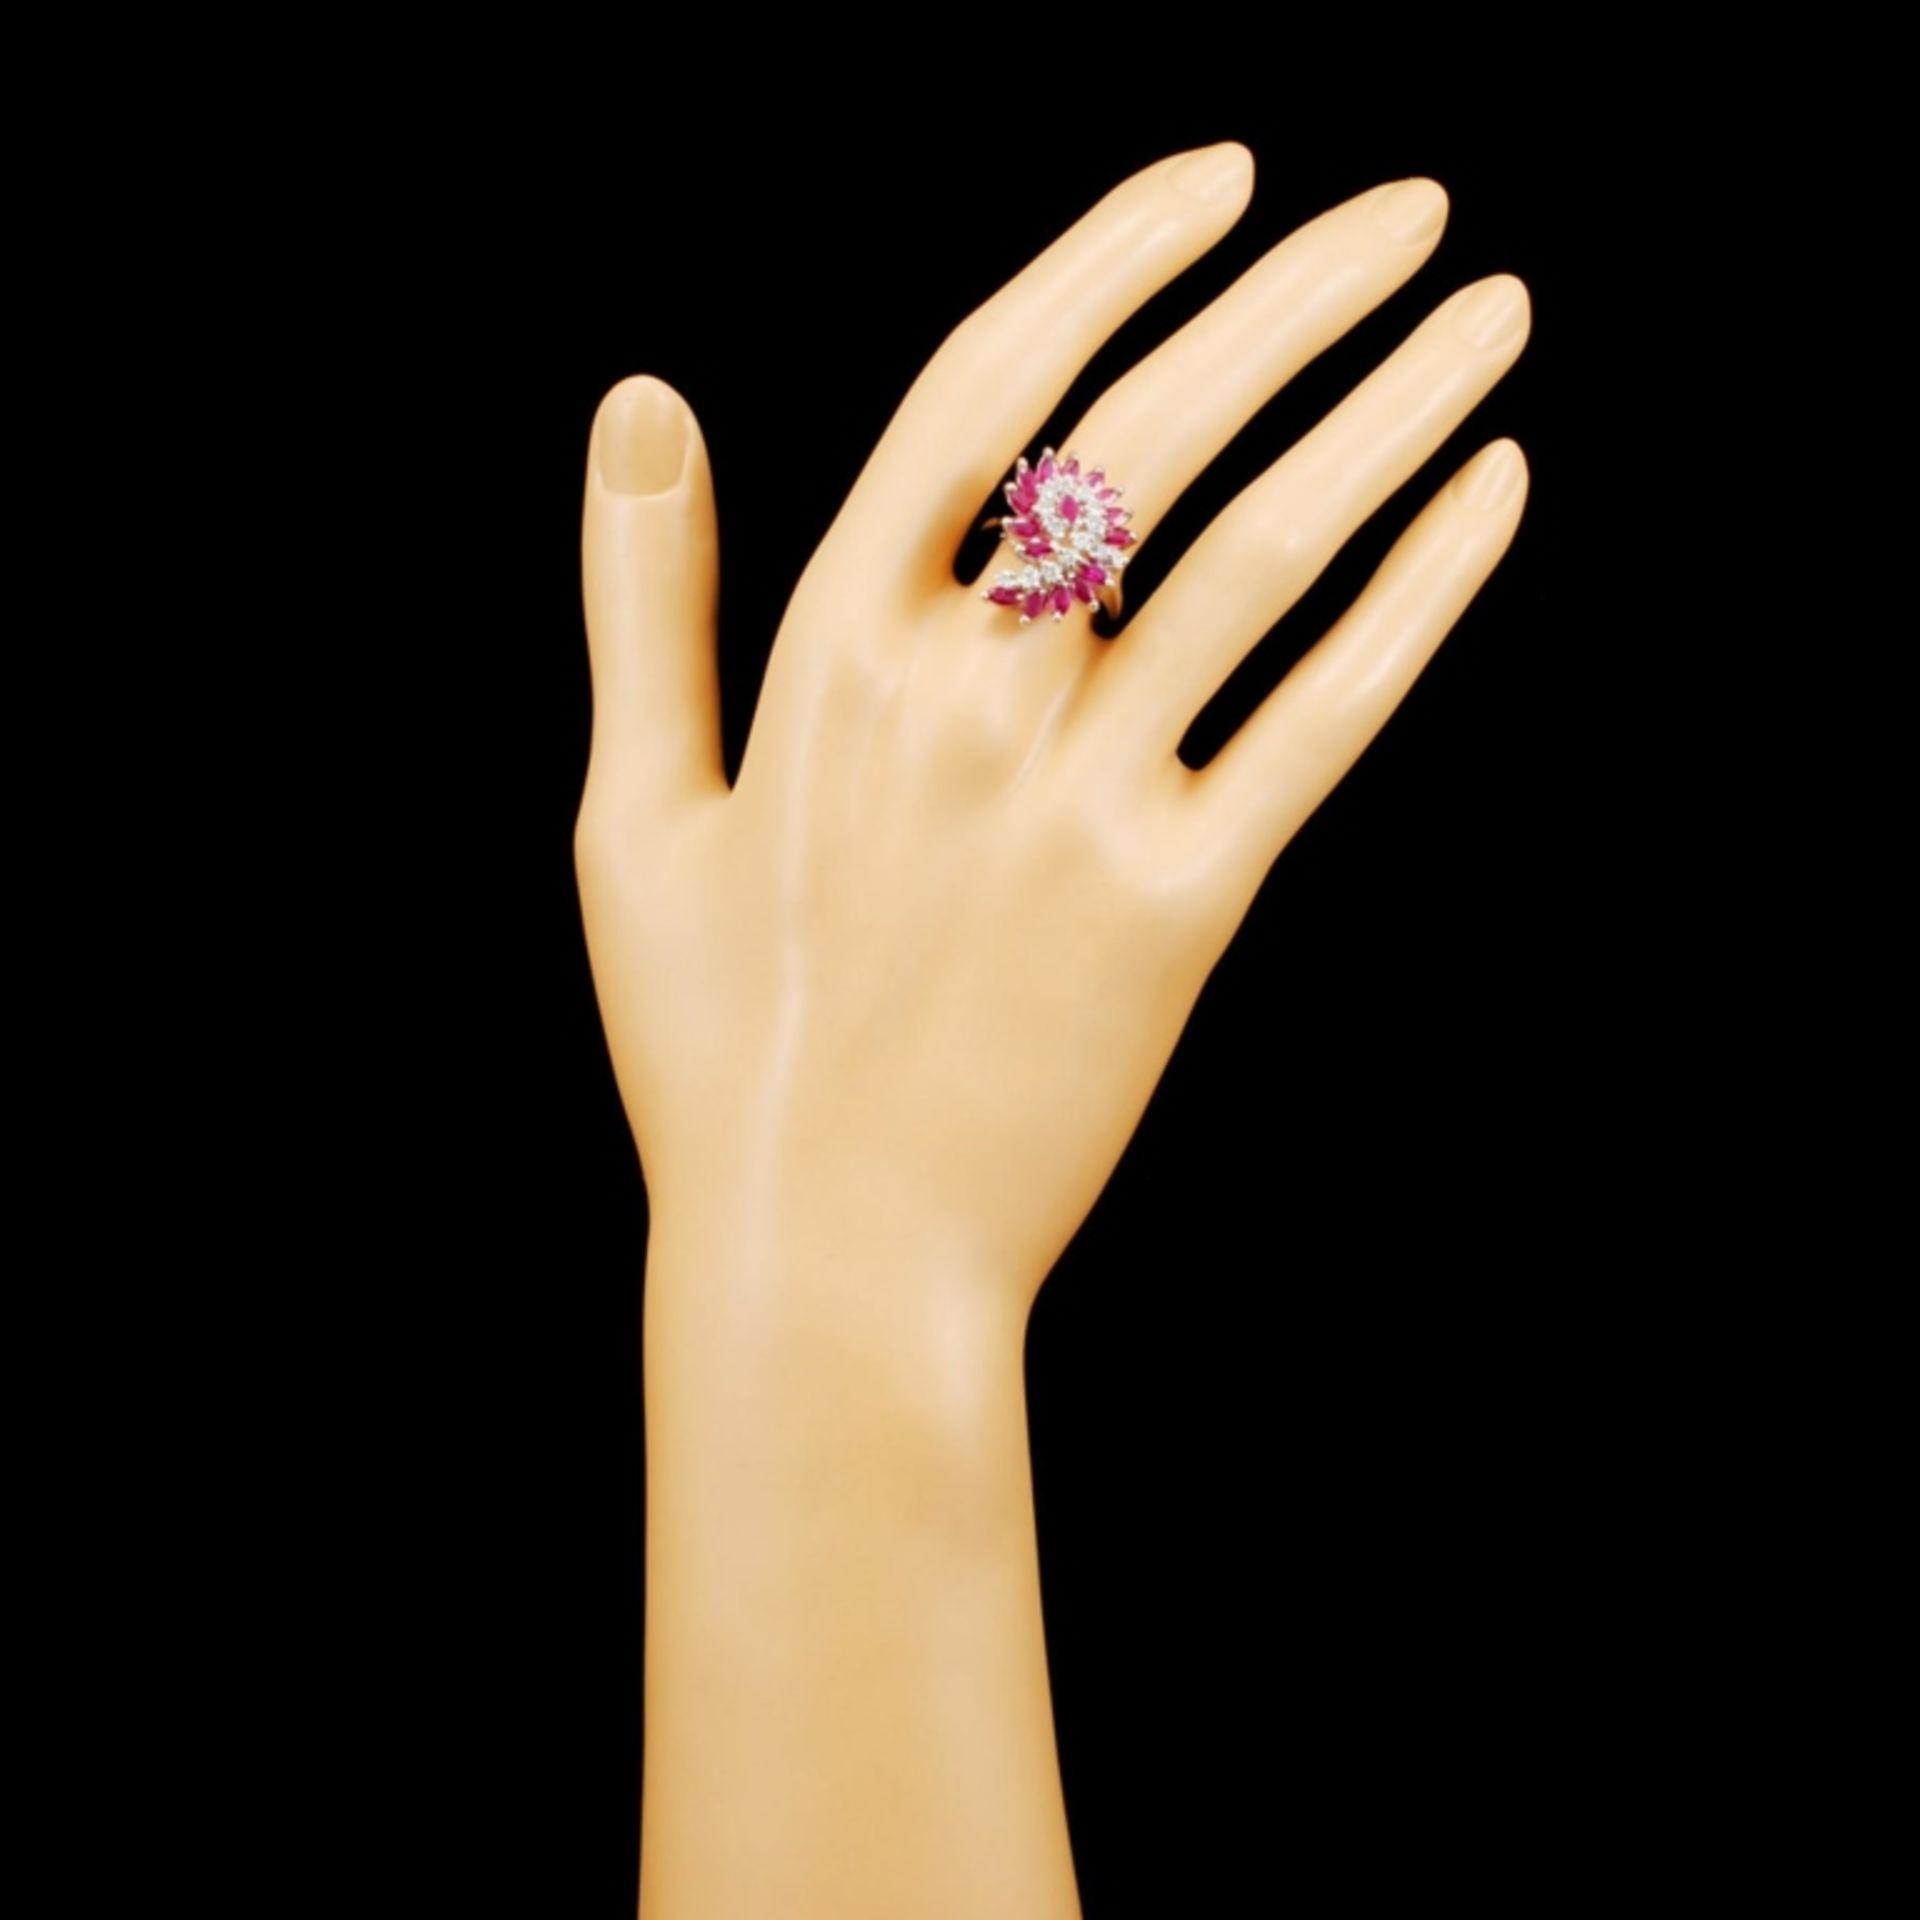 14K Gold 1.92ct Ruby & 0.35ctw Diamond Ring - Image 4 of 5